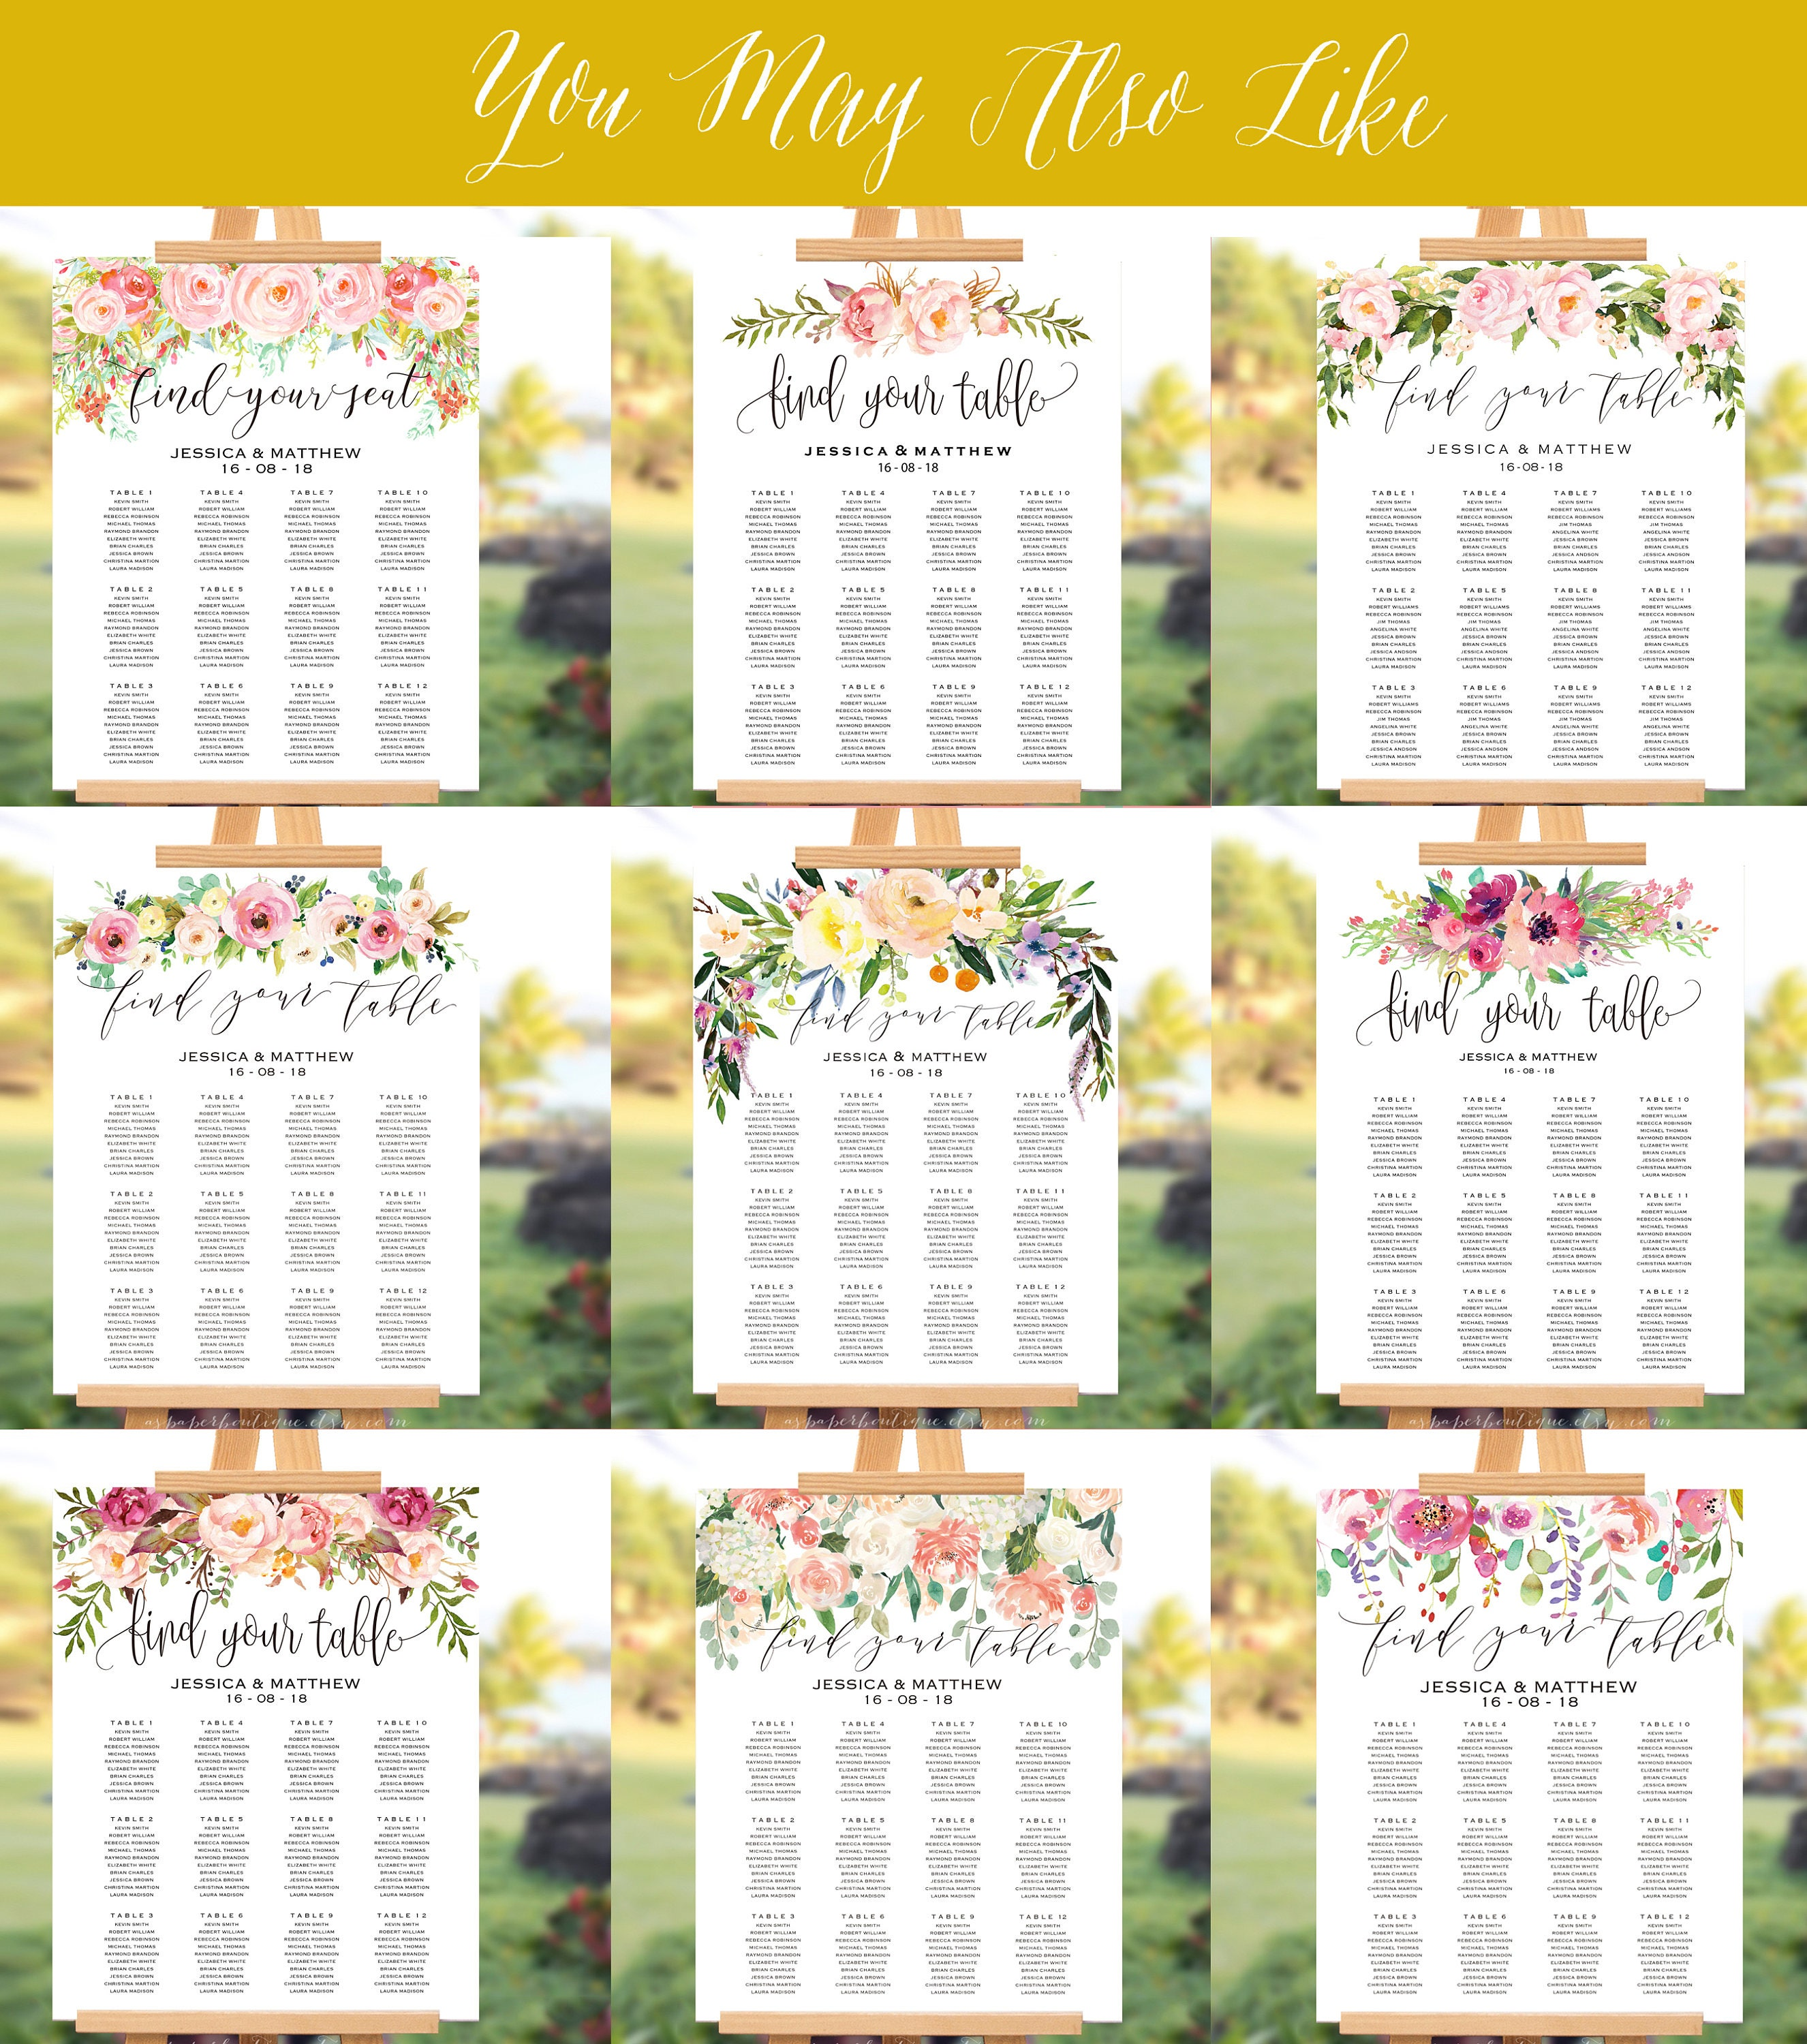 watercolor floral wedding seating chart template seating chart template find your seat sign floral seating chart